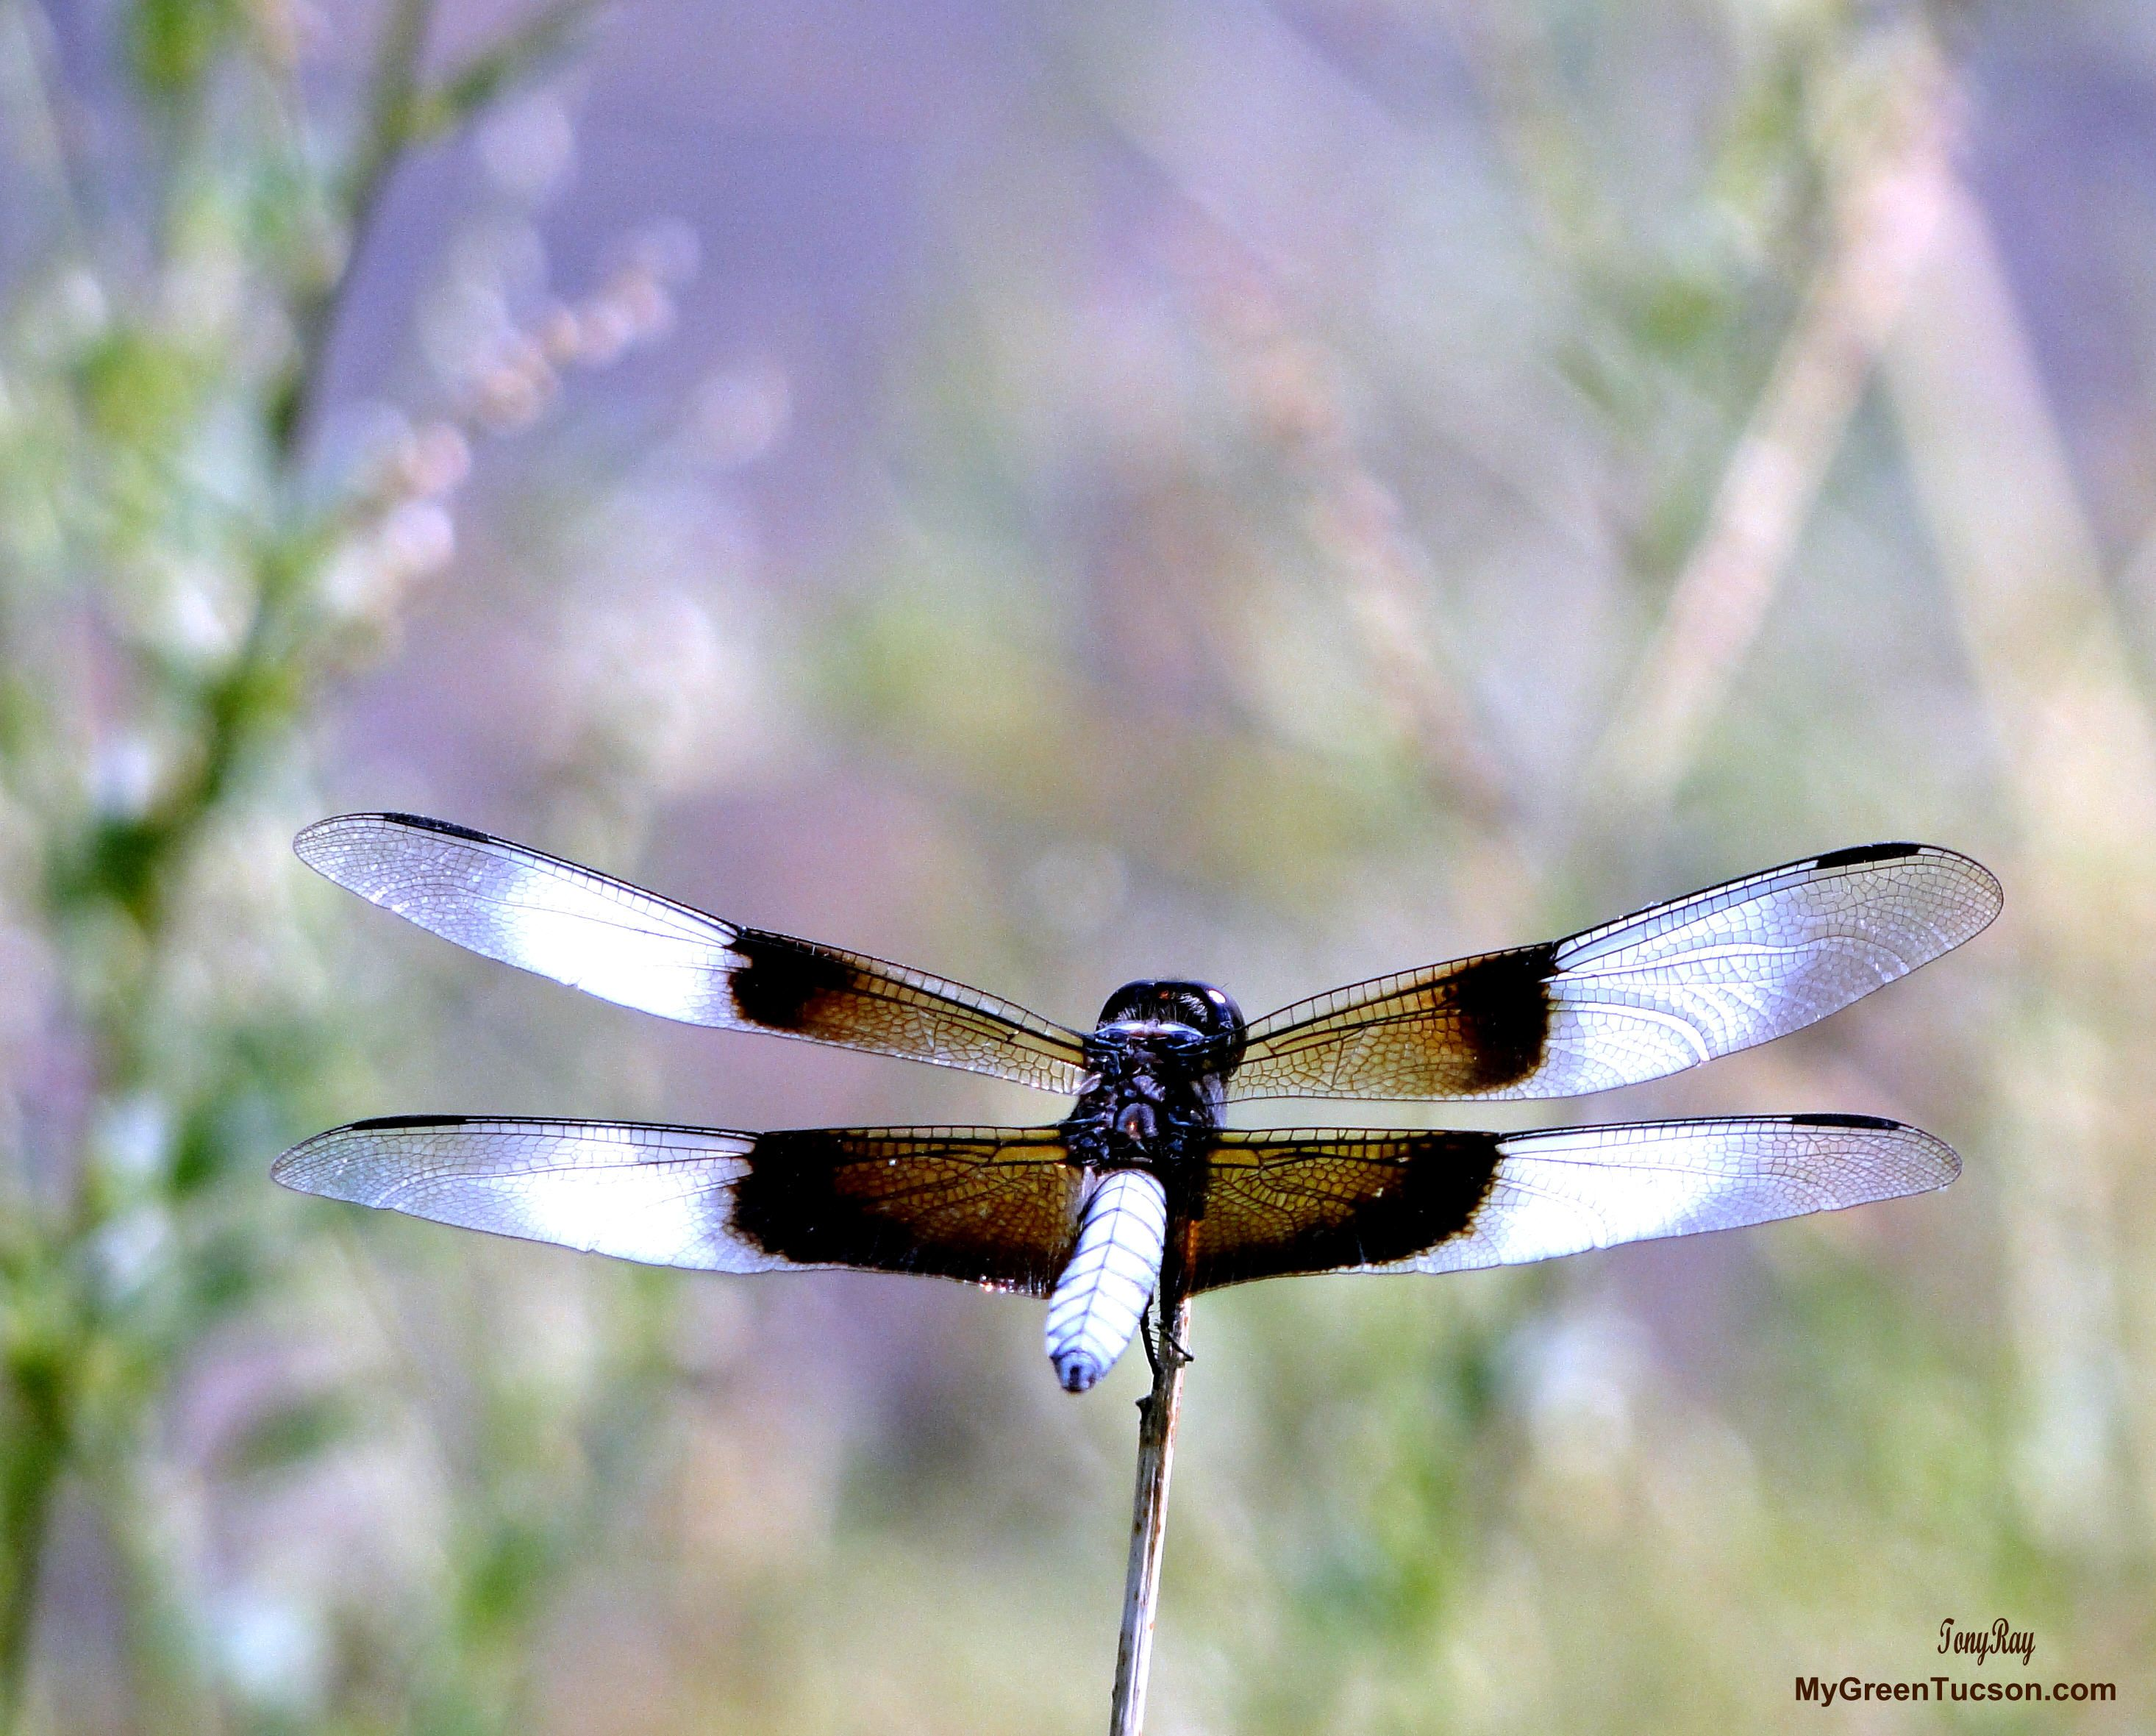 Dragonfly at Fool Hollow Lake in Show Low AZ taken with a Sony Cybershot DSC-HX1 from about 8 feet away www.MyGreenTucson... #dragonfly #dragonflies